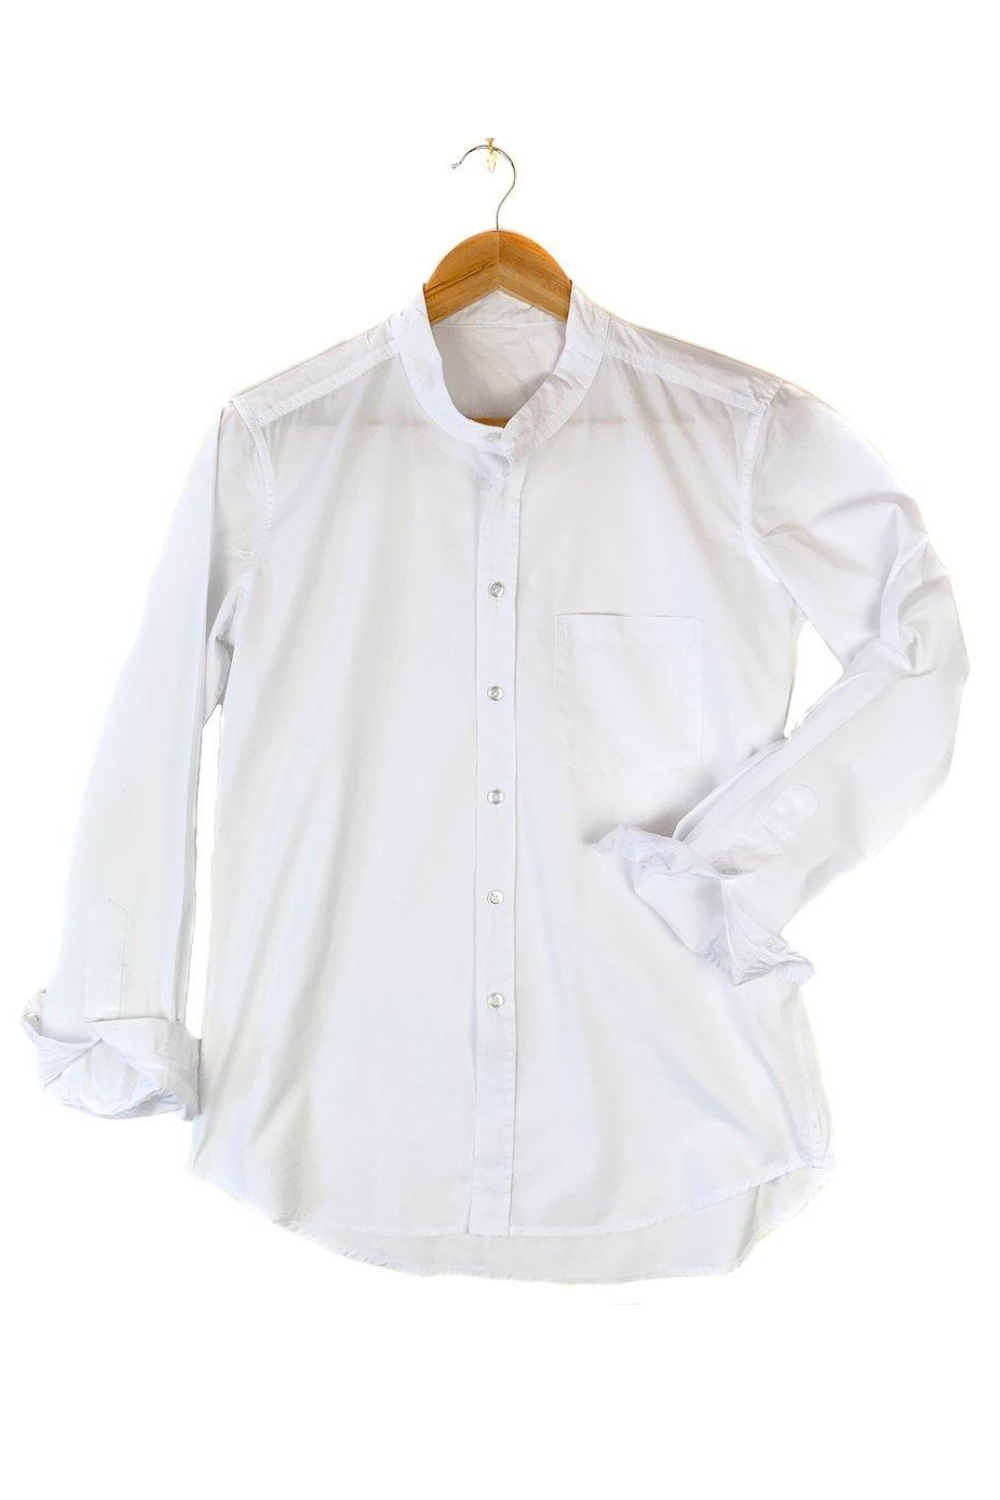 Irving and Powell-Franklin Band Collar Shirt | White